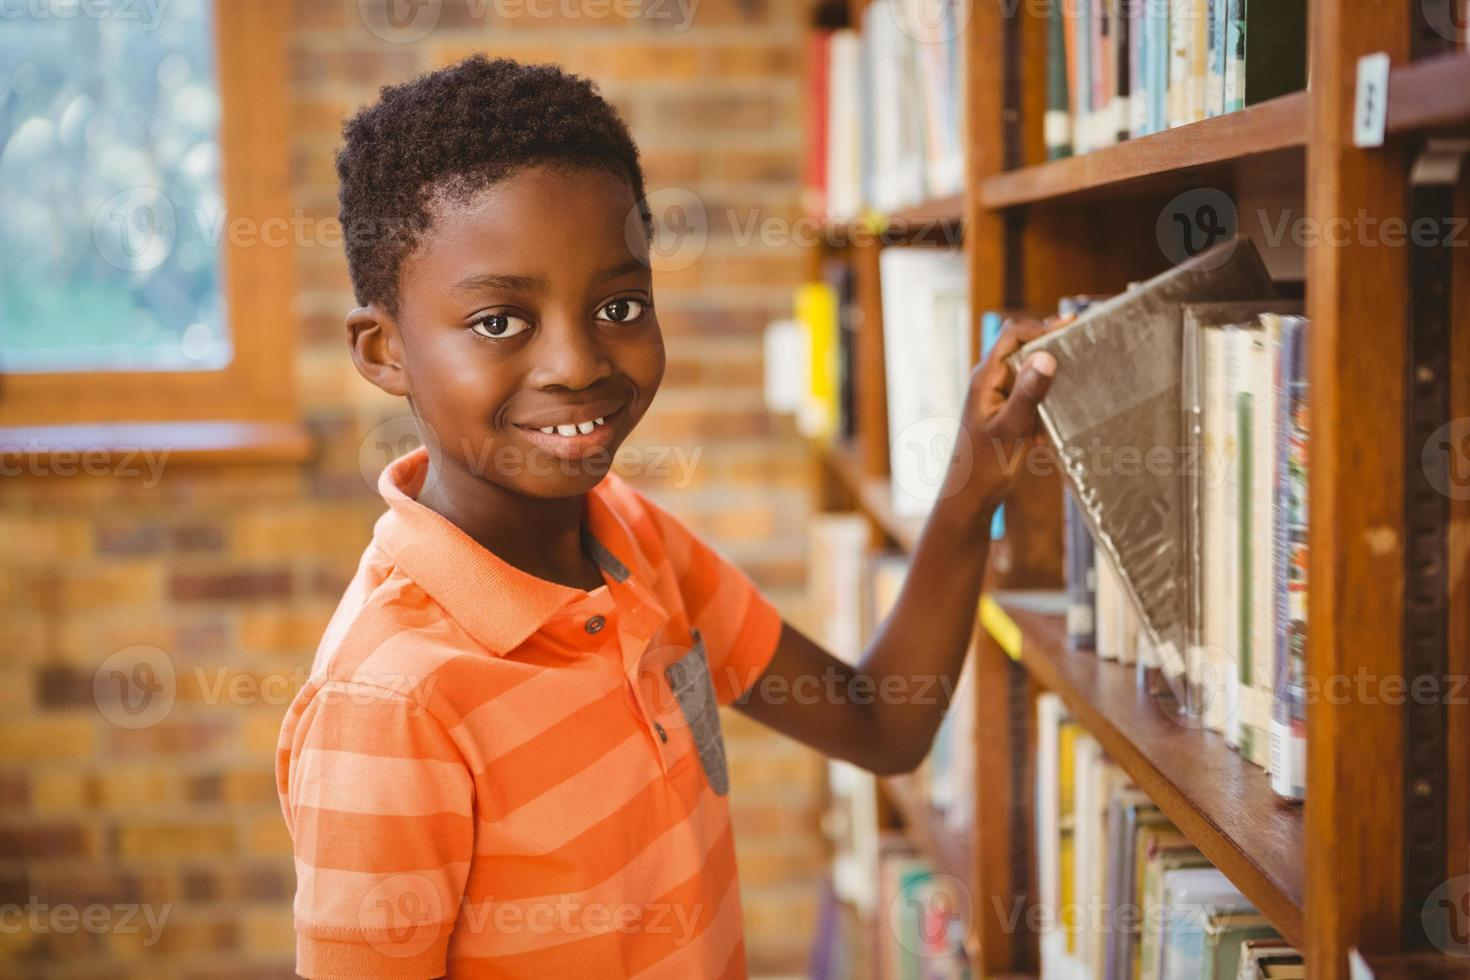 Portrait of boy selecting book in library photo